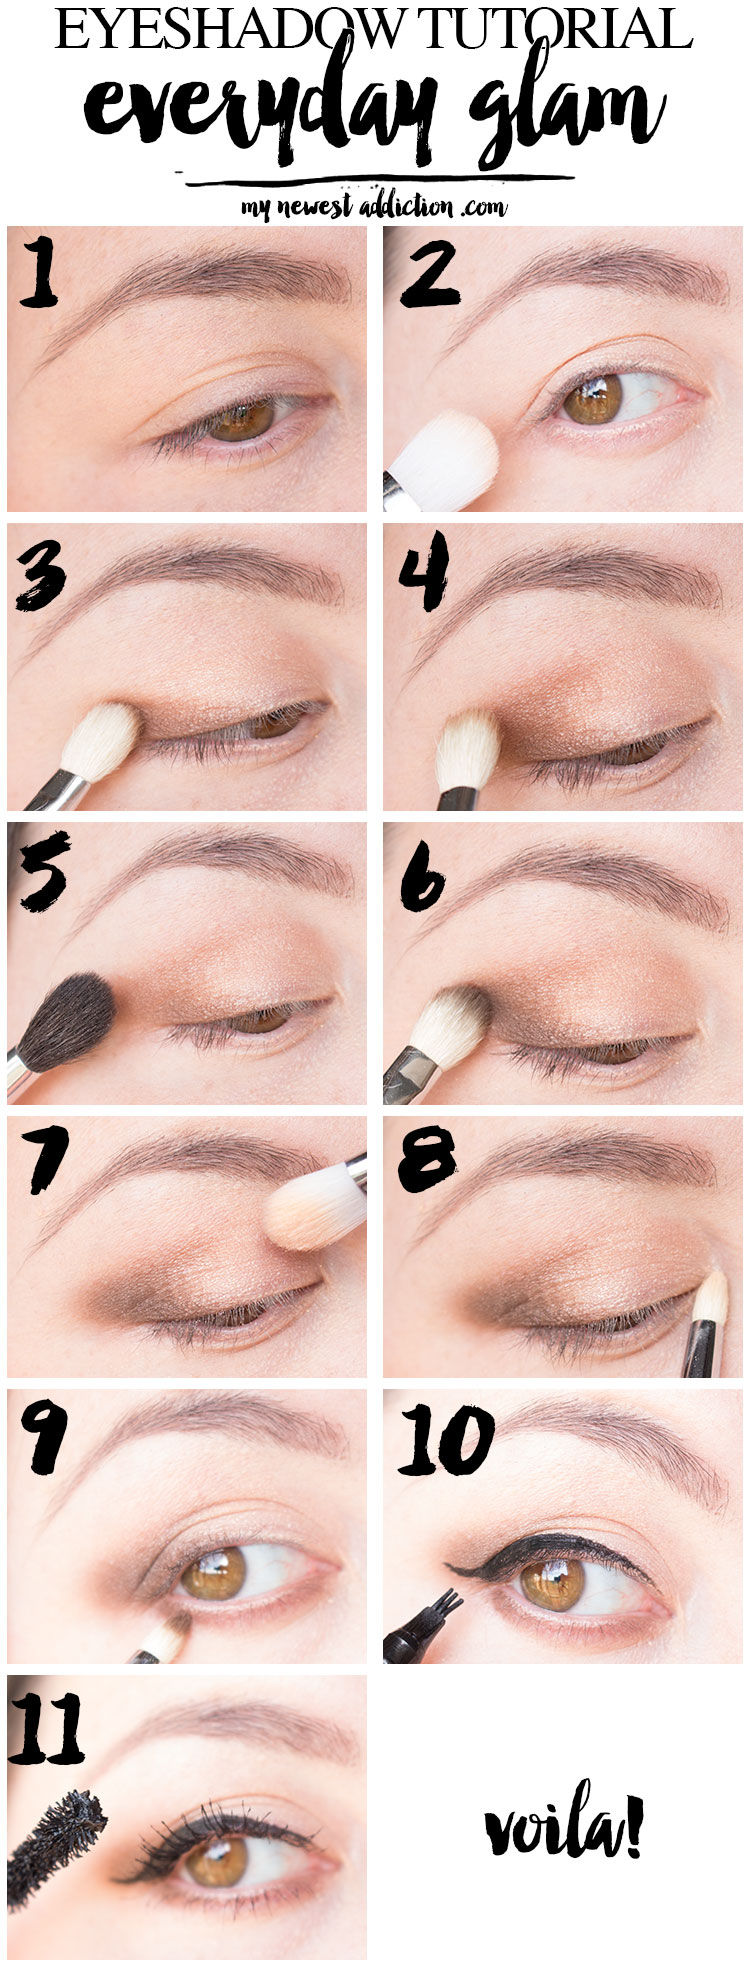 Eyeshadow Tutorial Everyday Glam